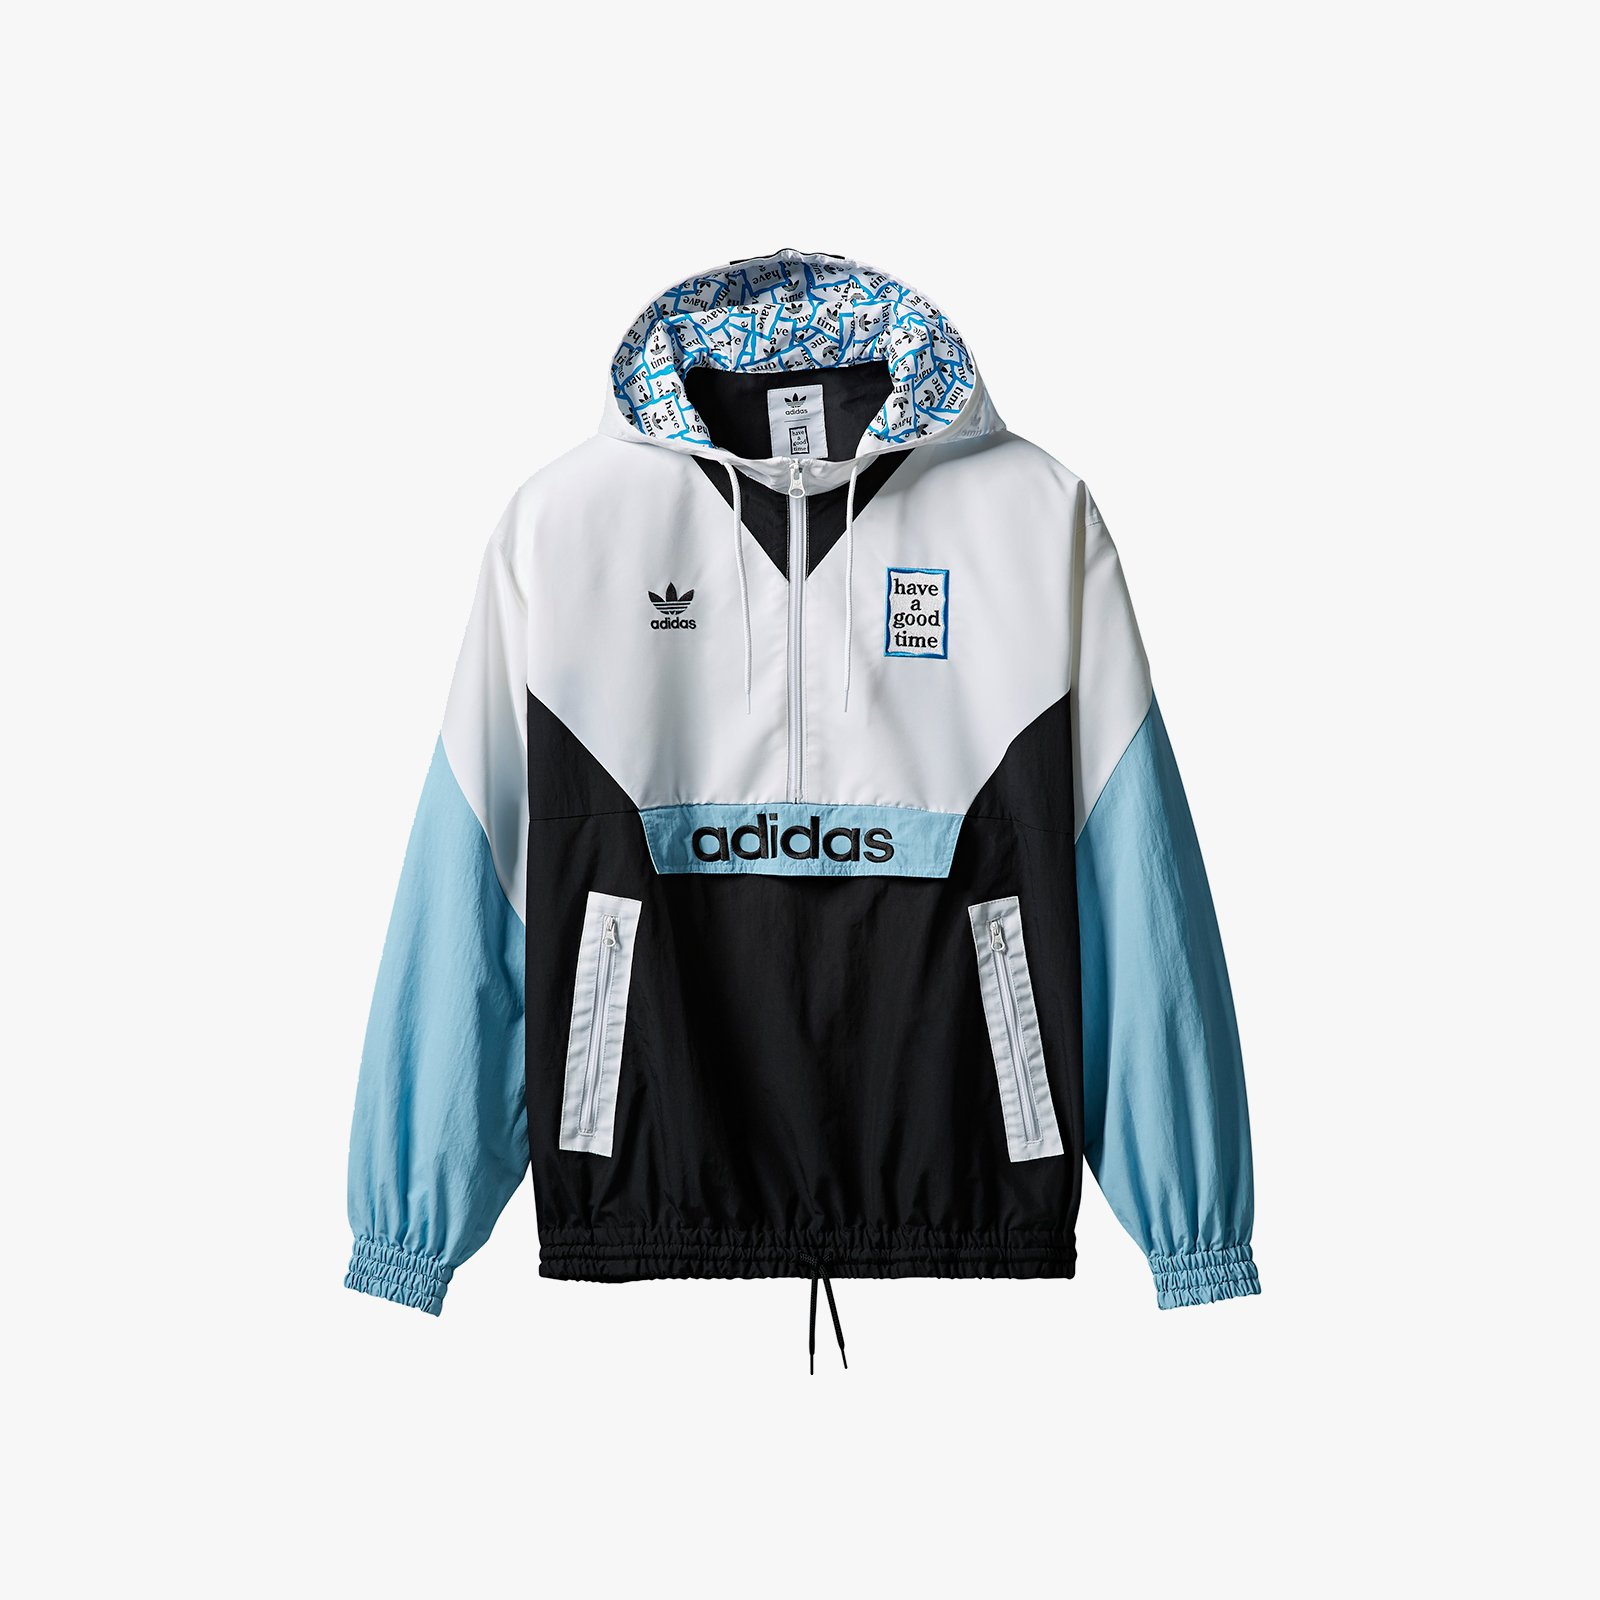 best website ed46e 395e4 adidas Originals Pullover Windbreaker x Have A Good Time